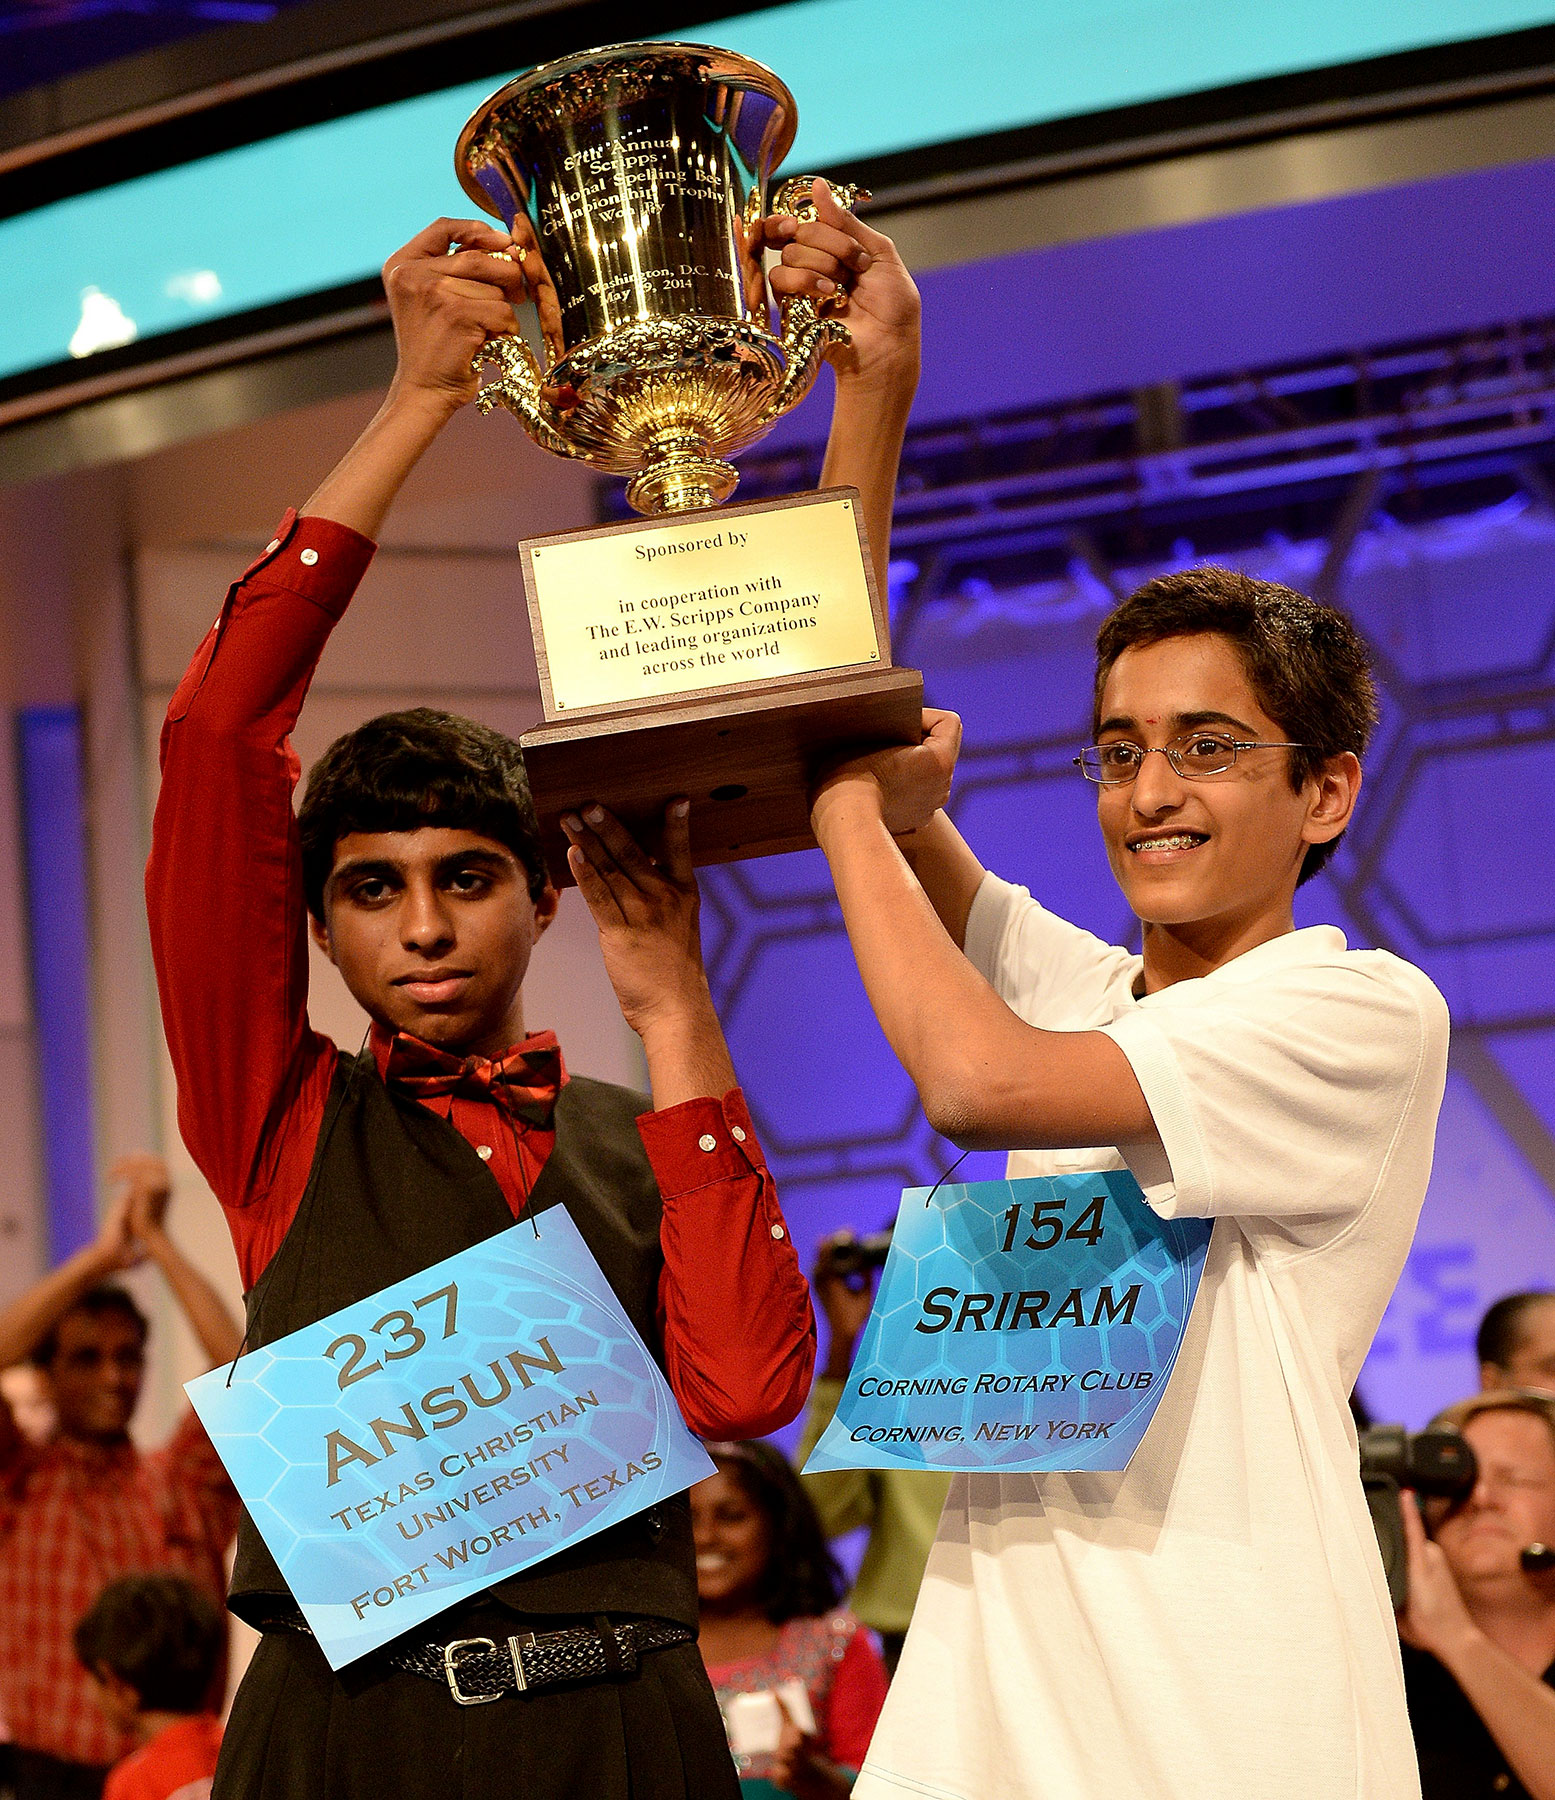 2014 National Spelling Bee